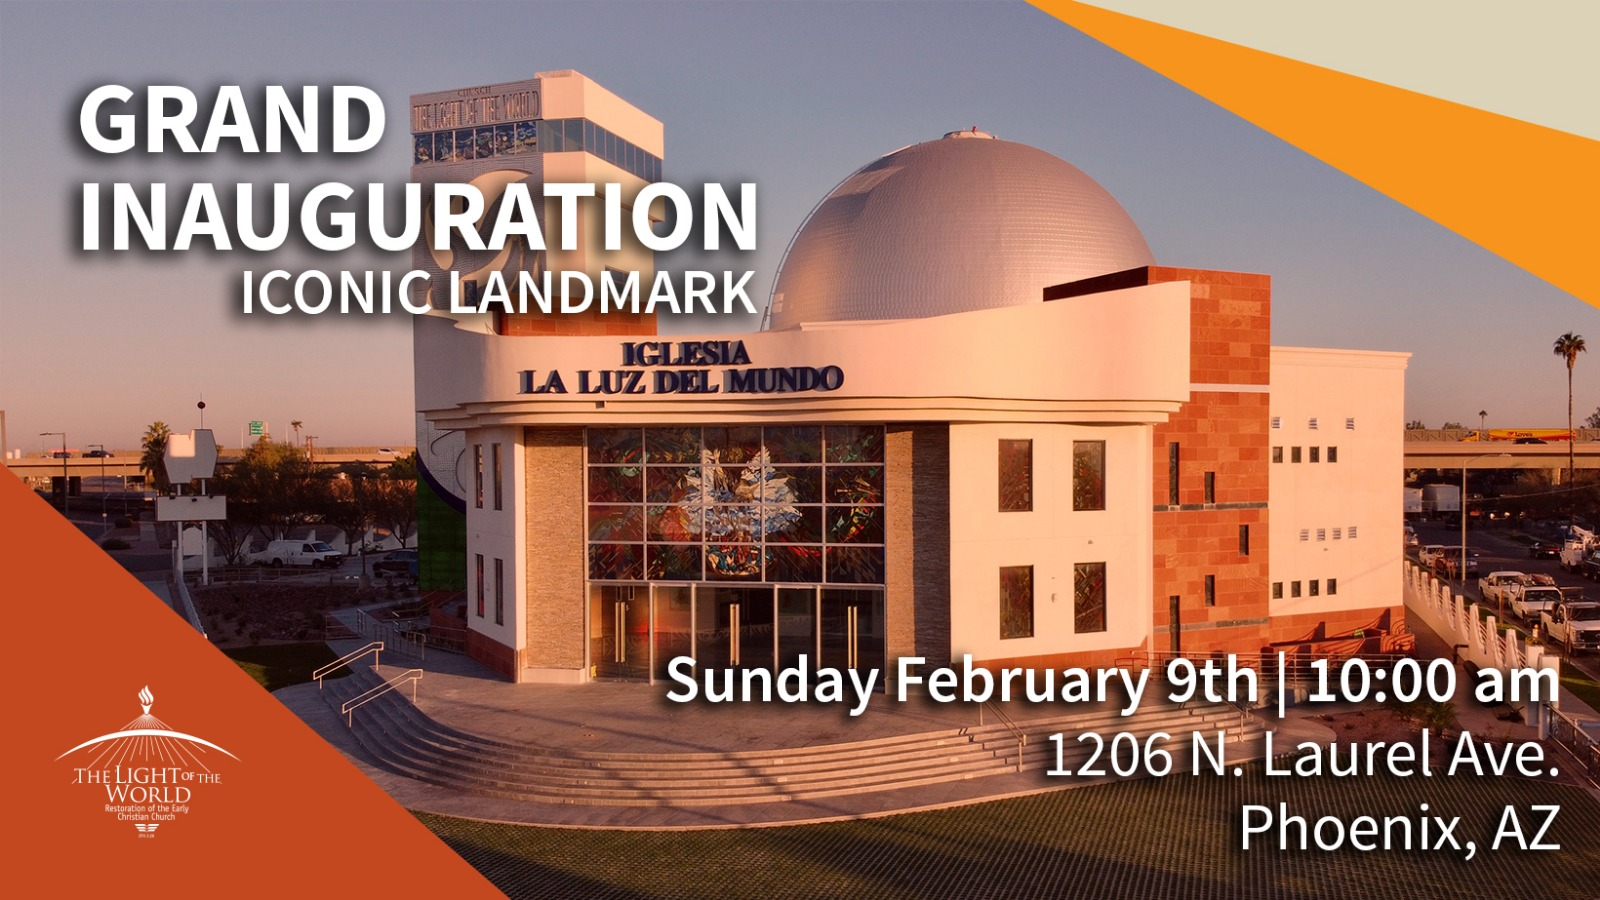 The light of the world temple inauguration on February 9, 2020